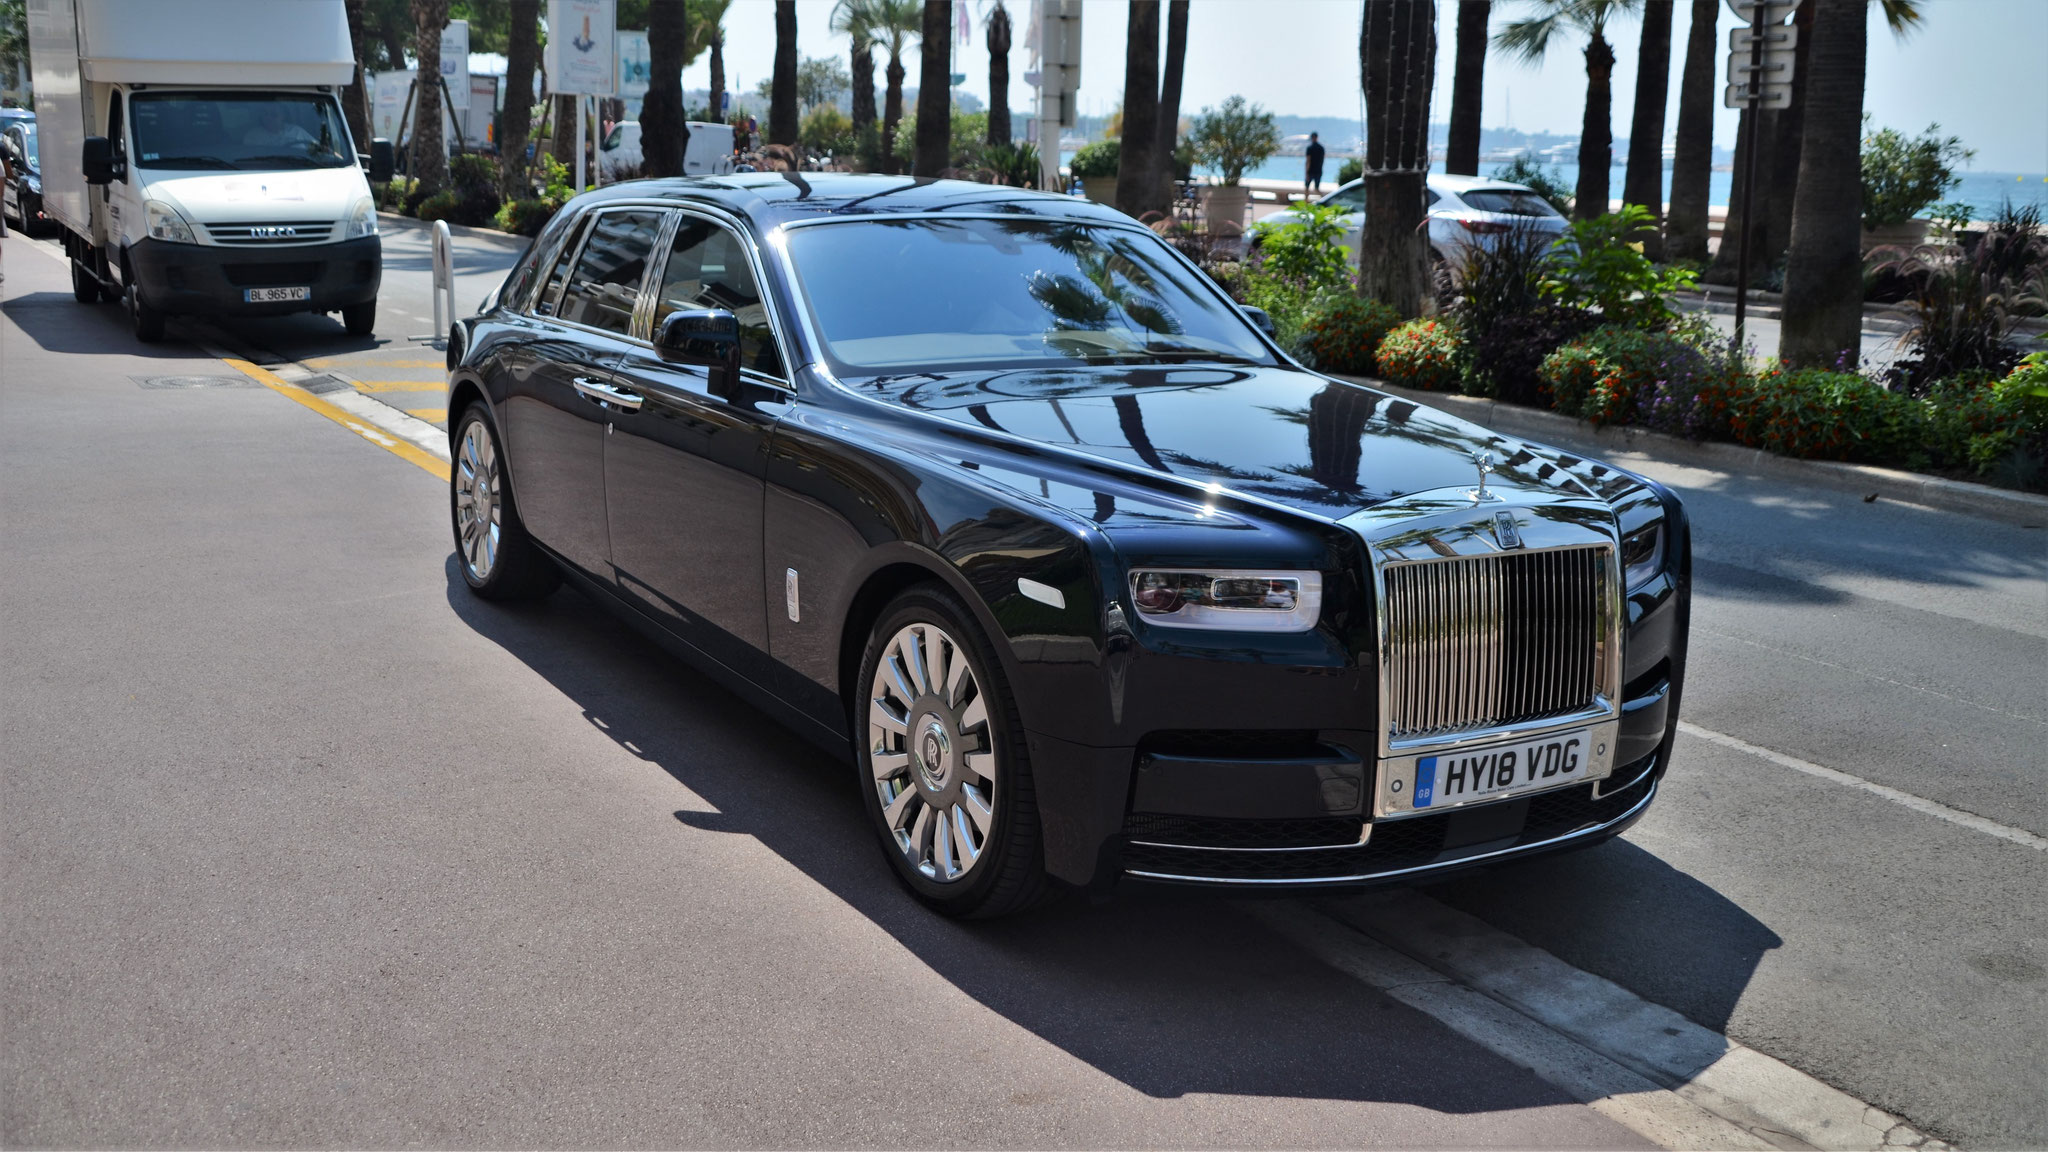 Rolls Royce Phantom - HY18-VDG (GB)